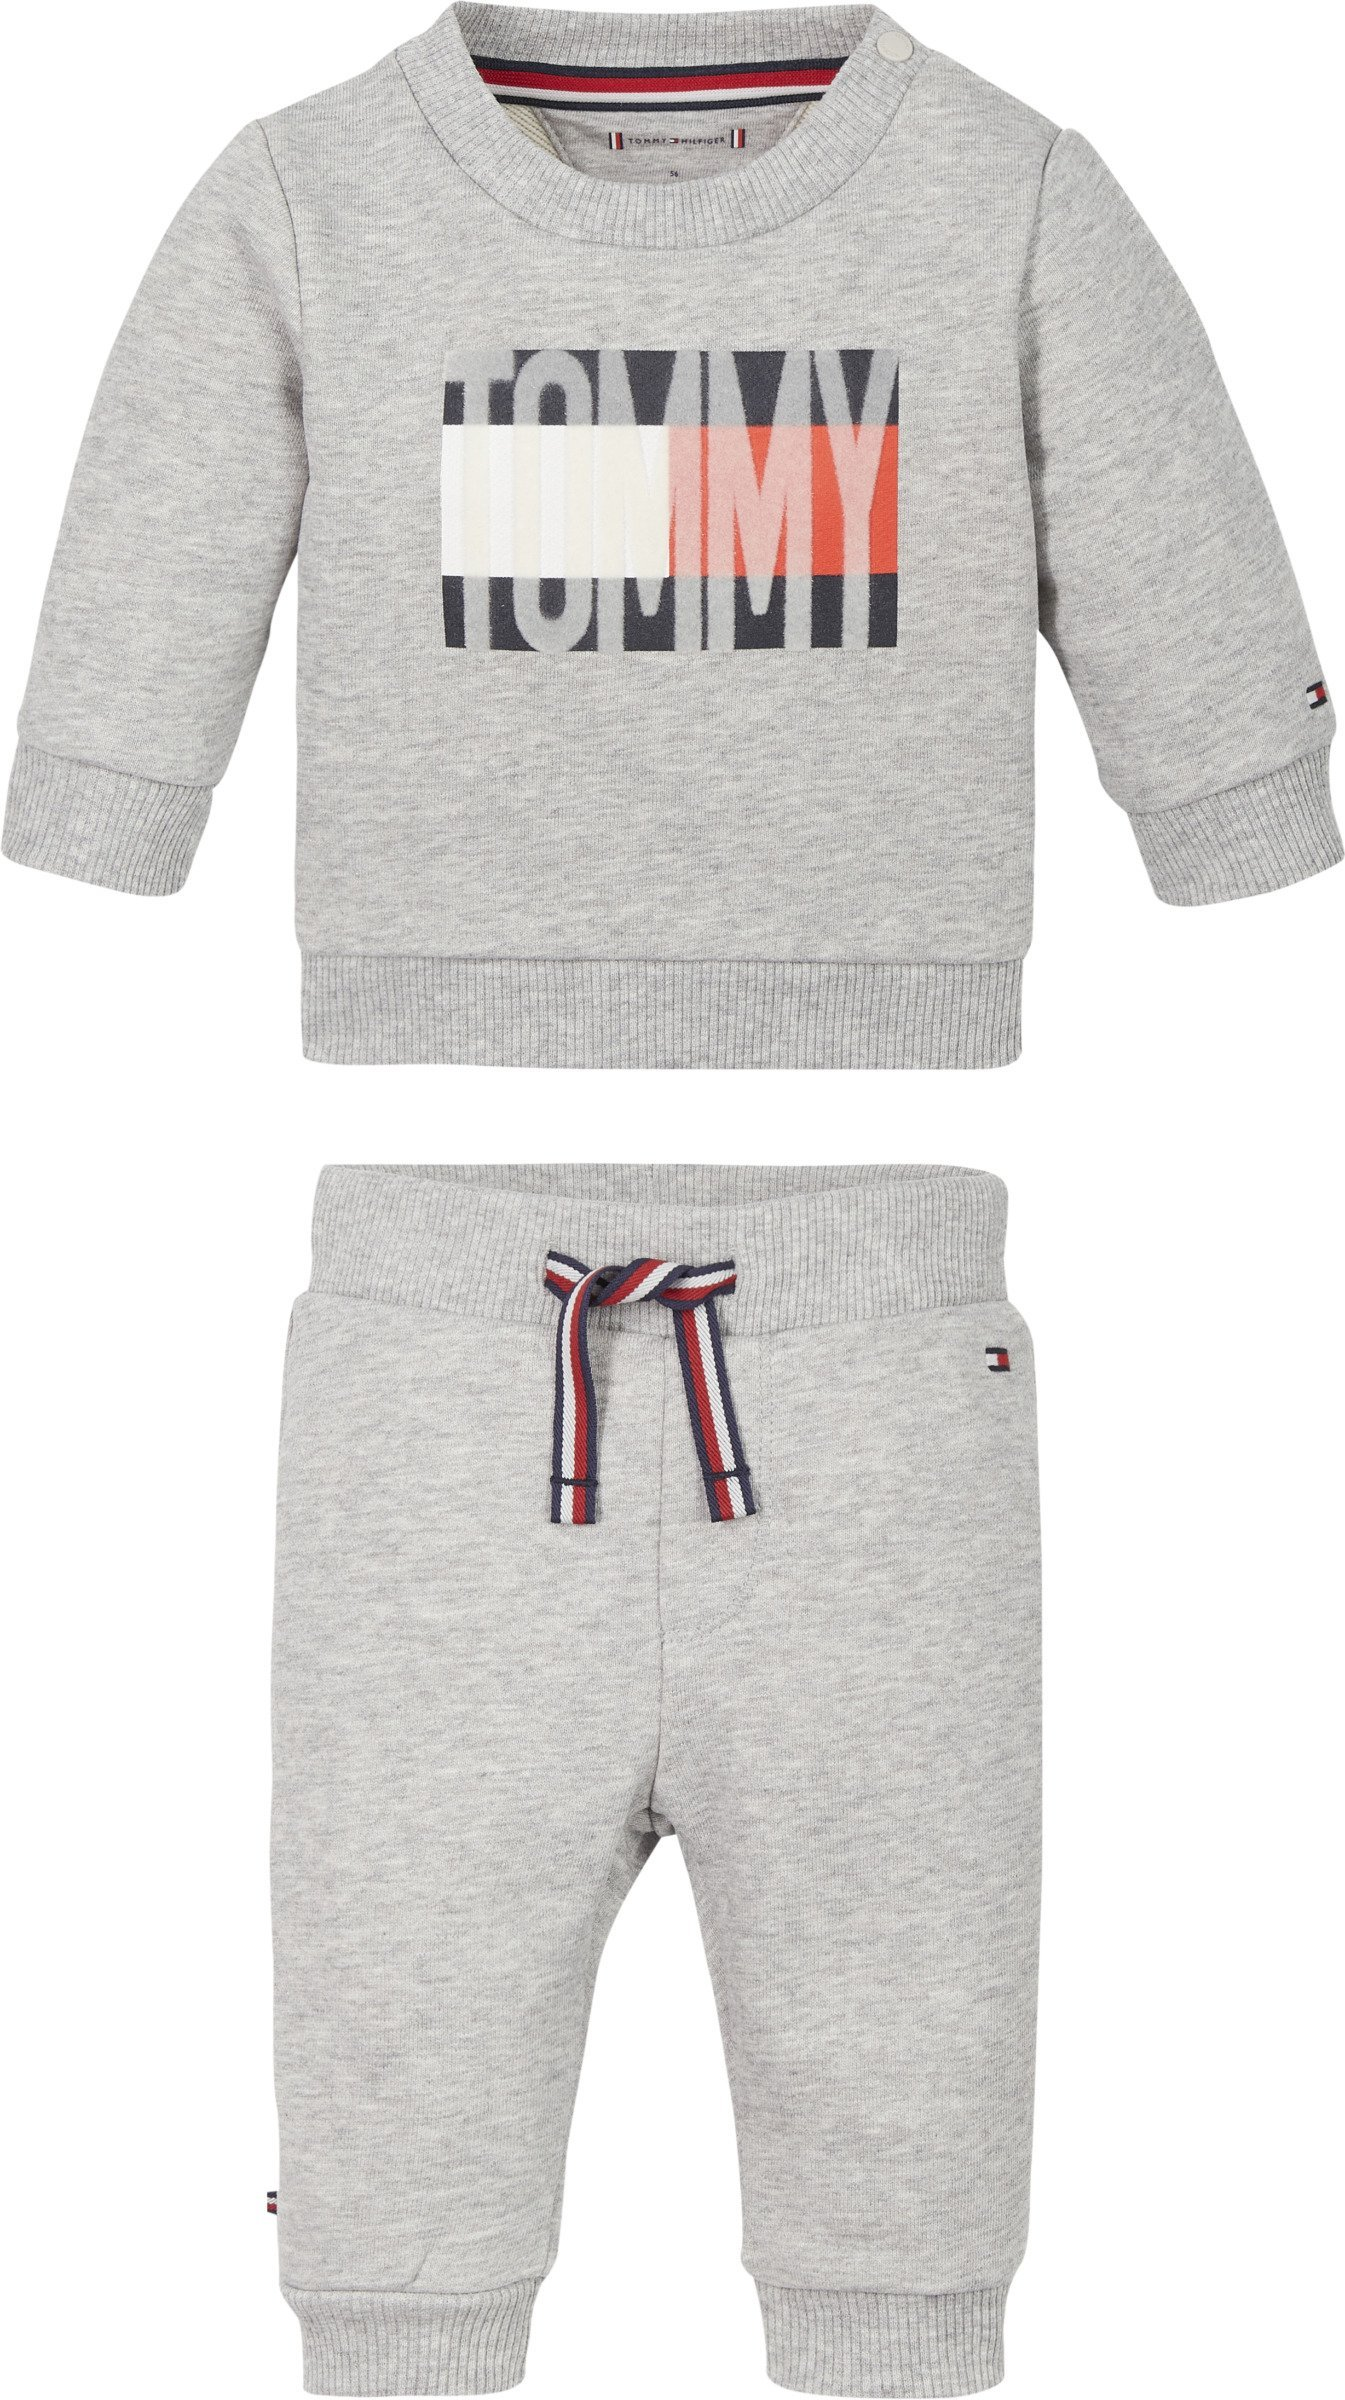 Tommy Hilfiger, Baby flag collegesetti harmaa